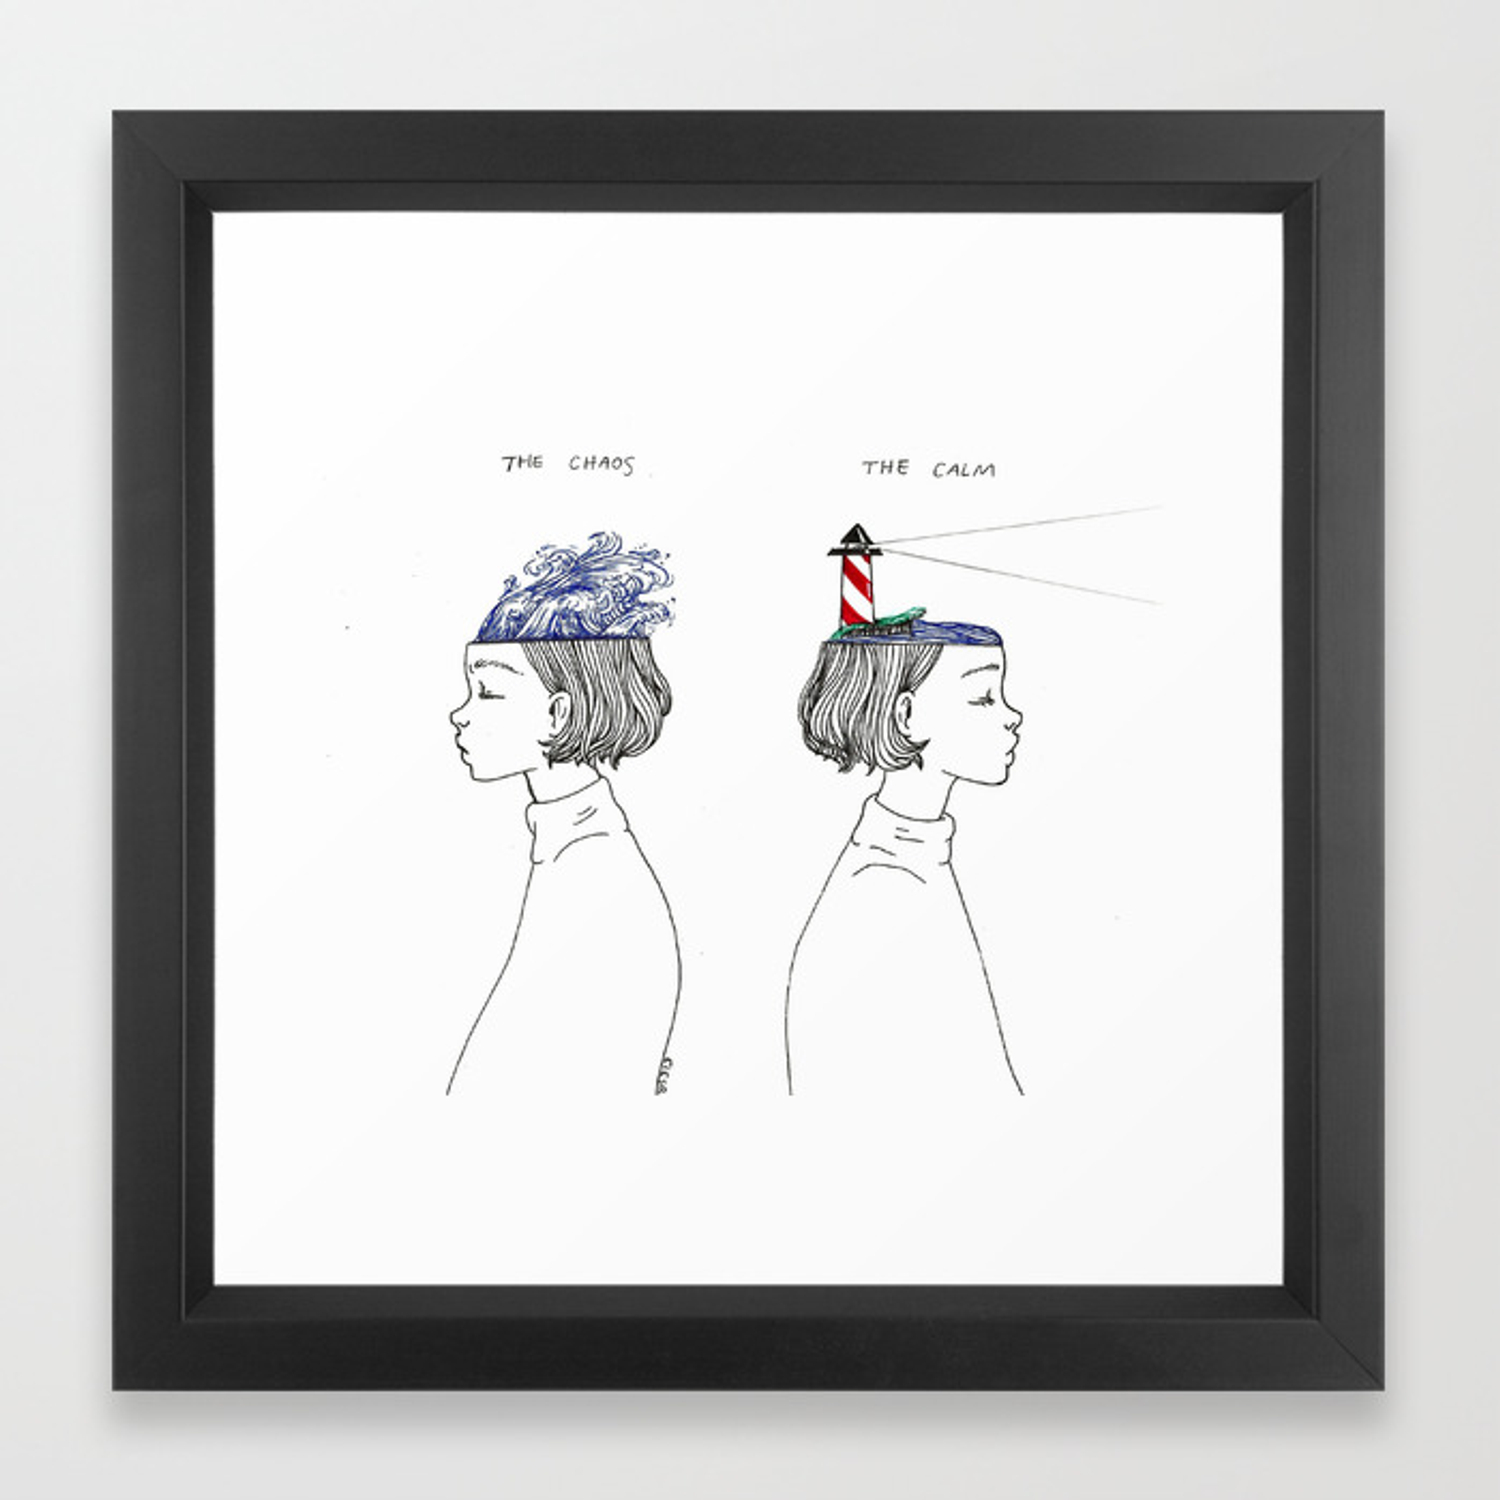 The Chaos and The Calm Framed Art Print